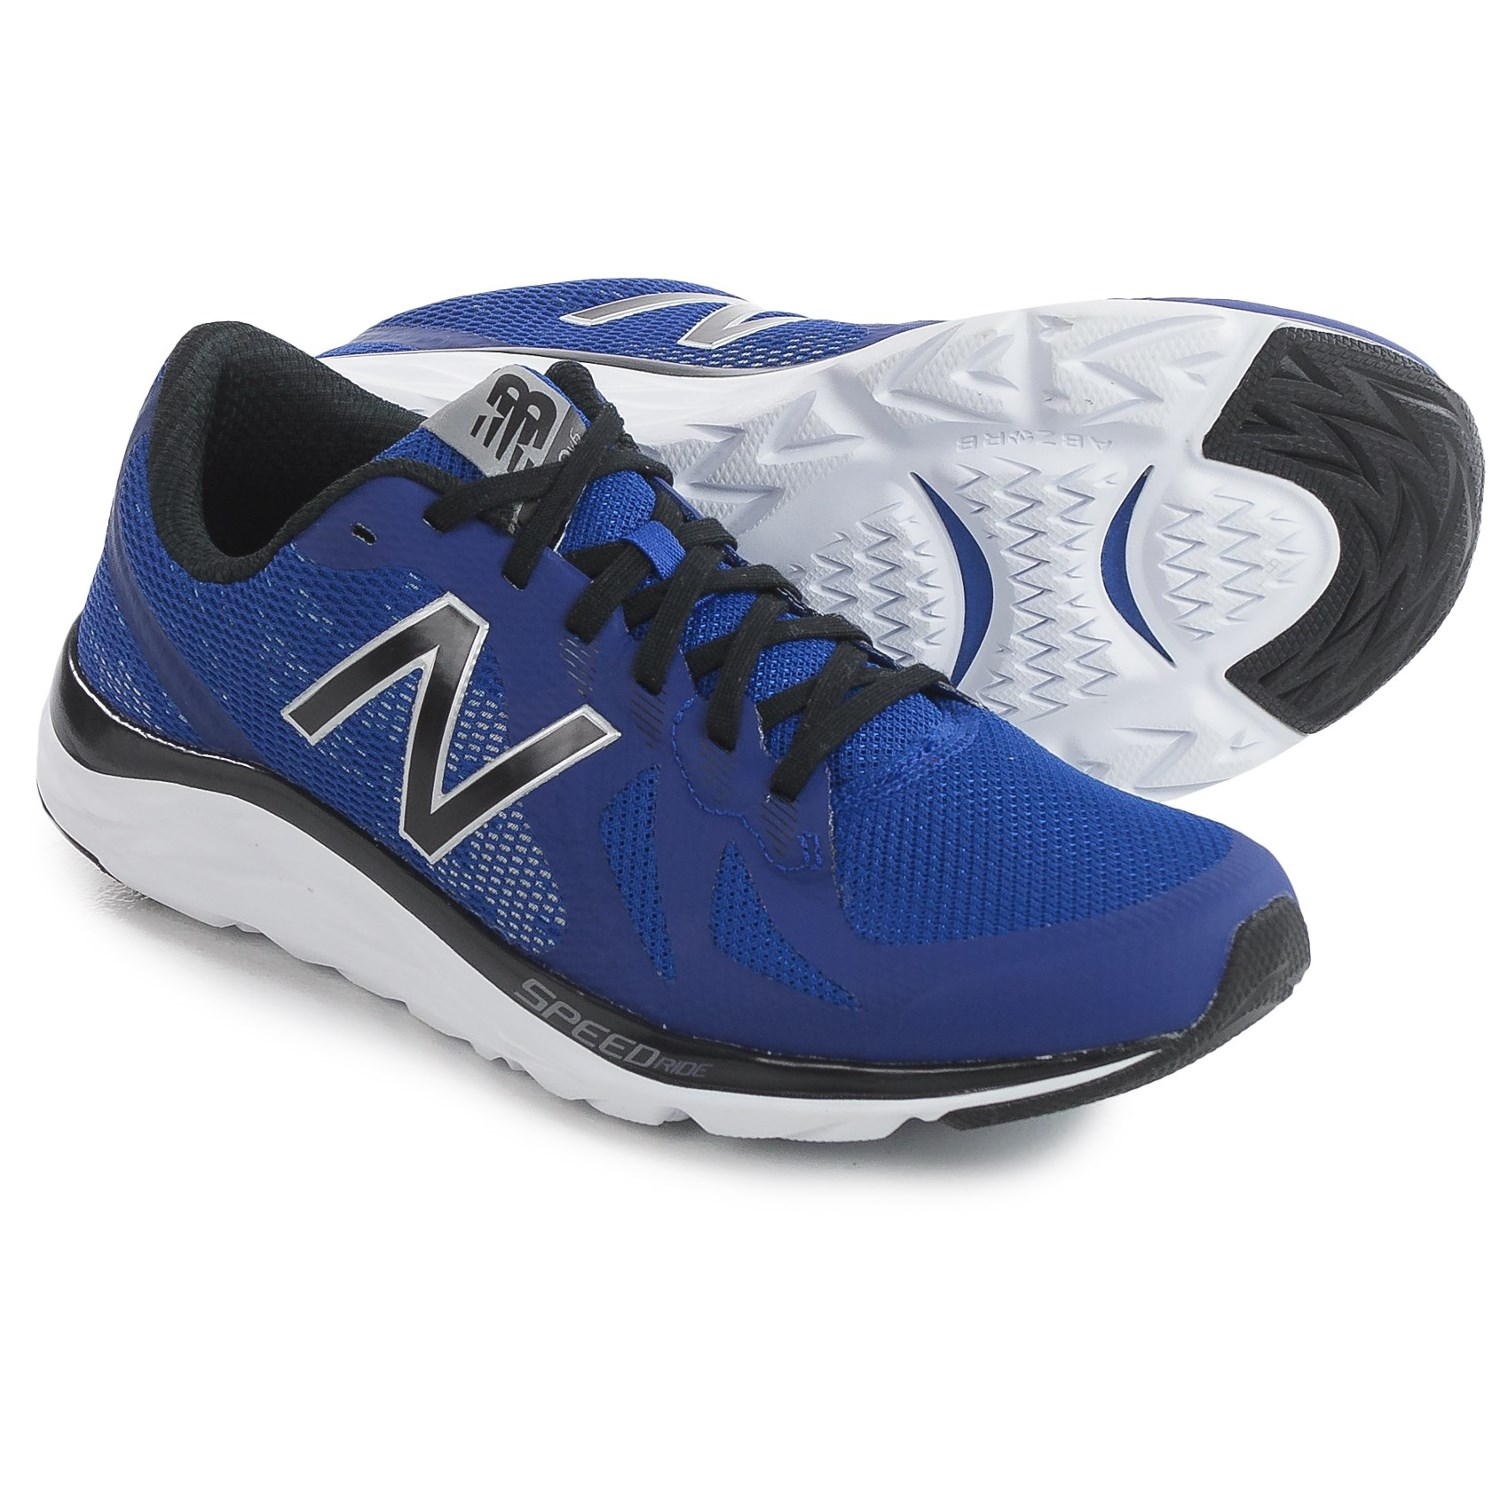 new balance m790v6 running shoes for save 49